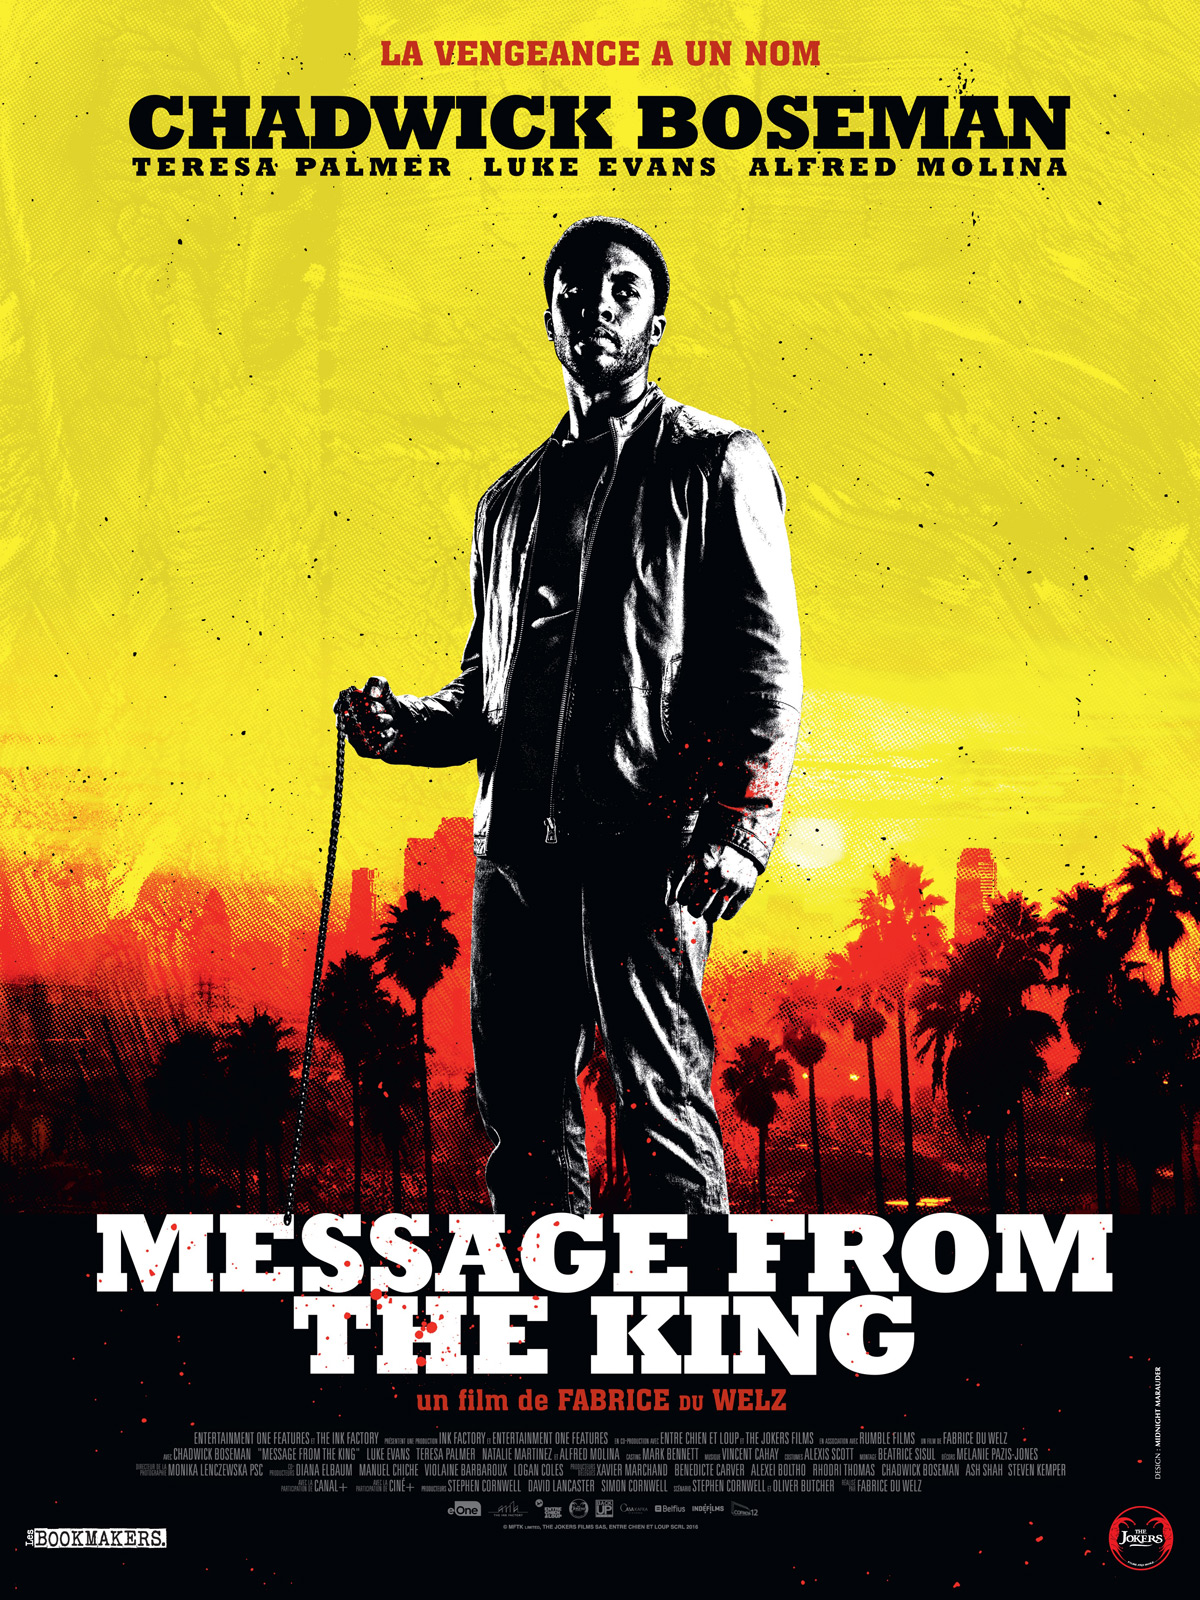 message-from-the-king-fabrice-du-welz-Chadwick-Boseman-affiche-folkr-01